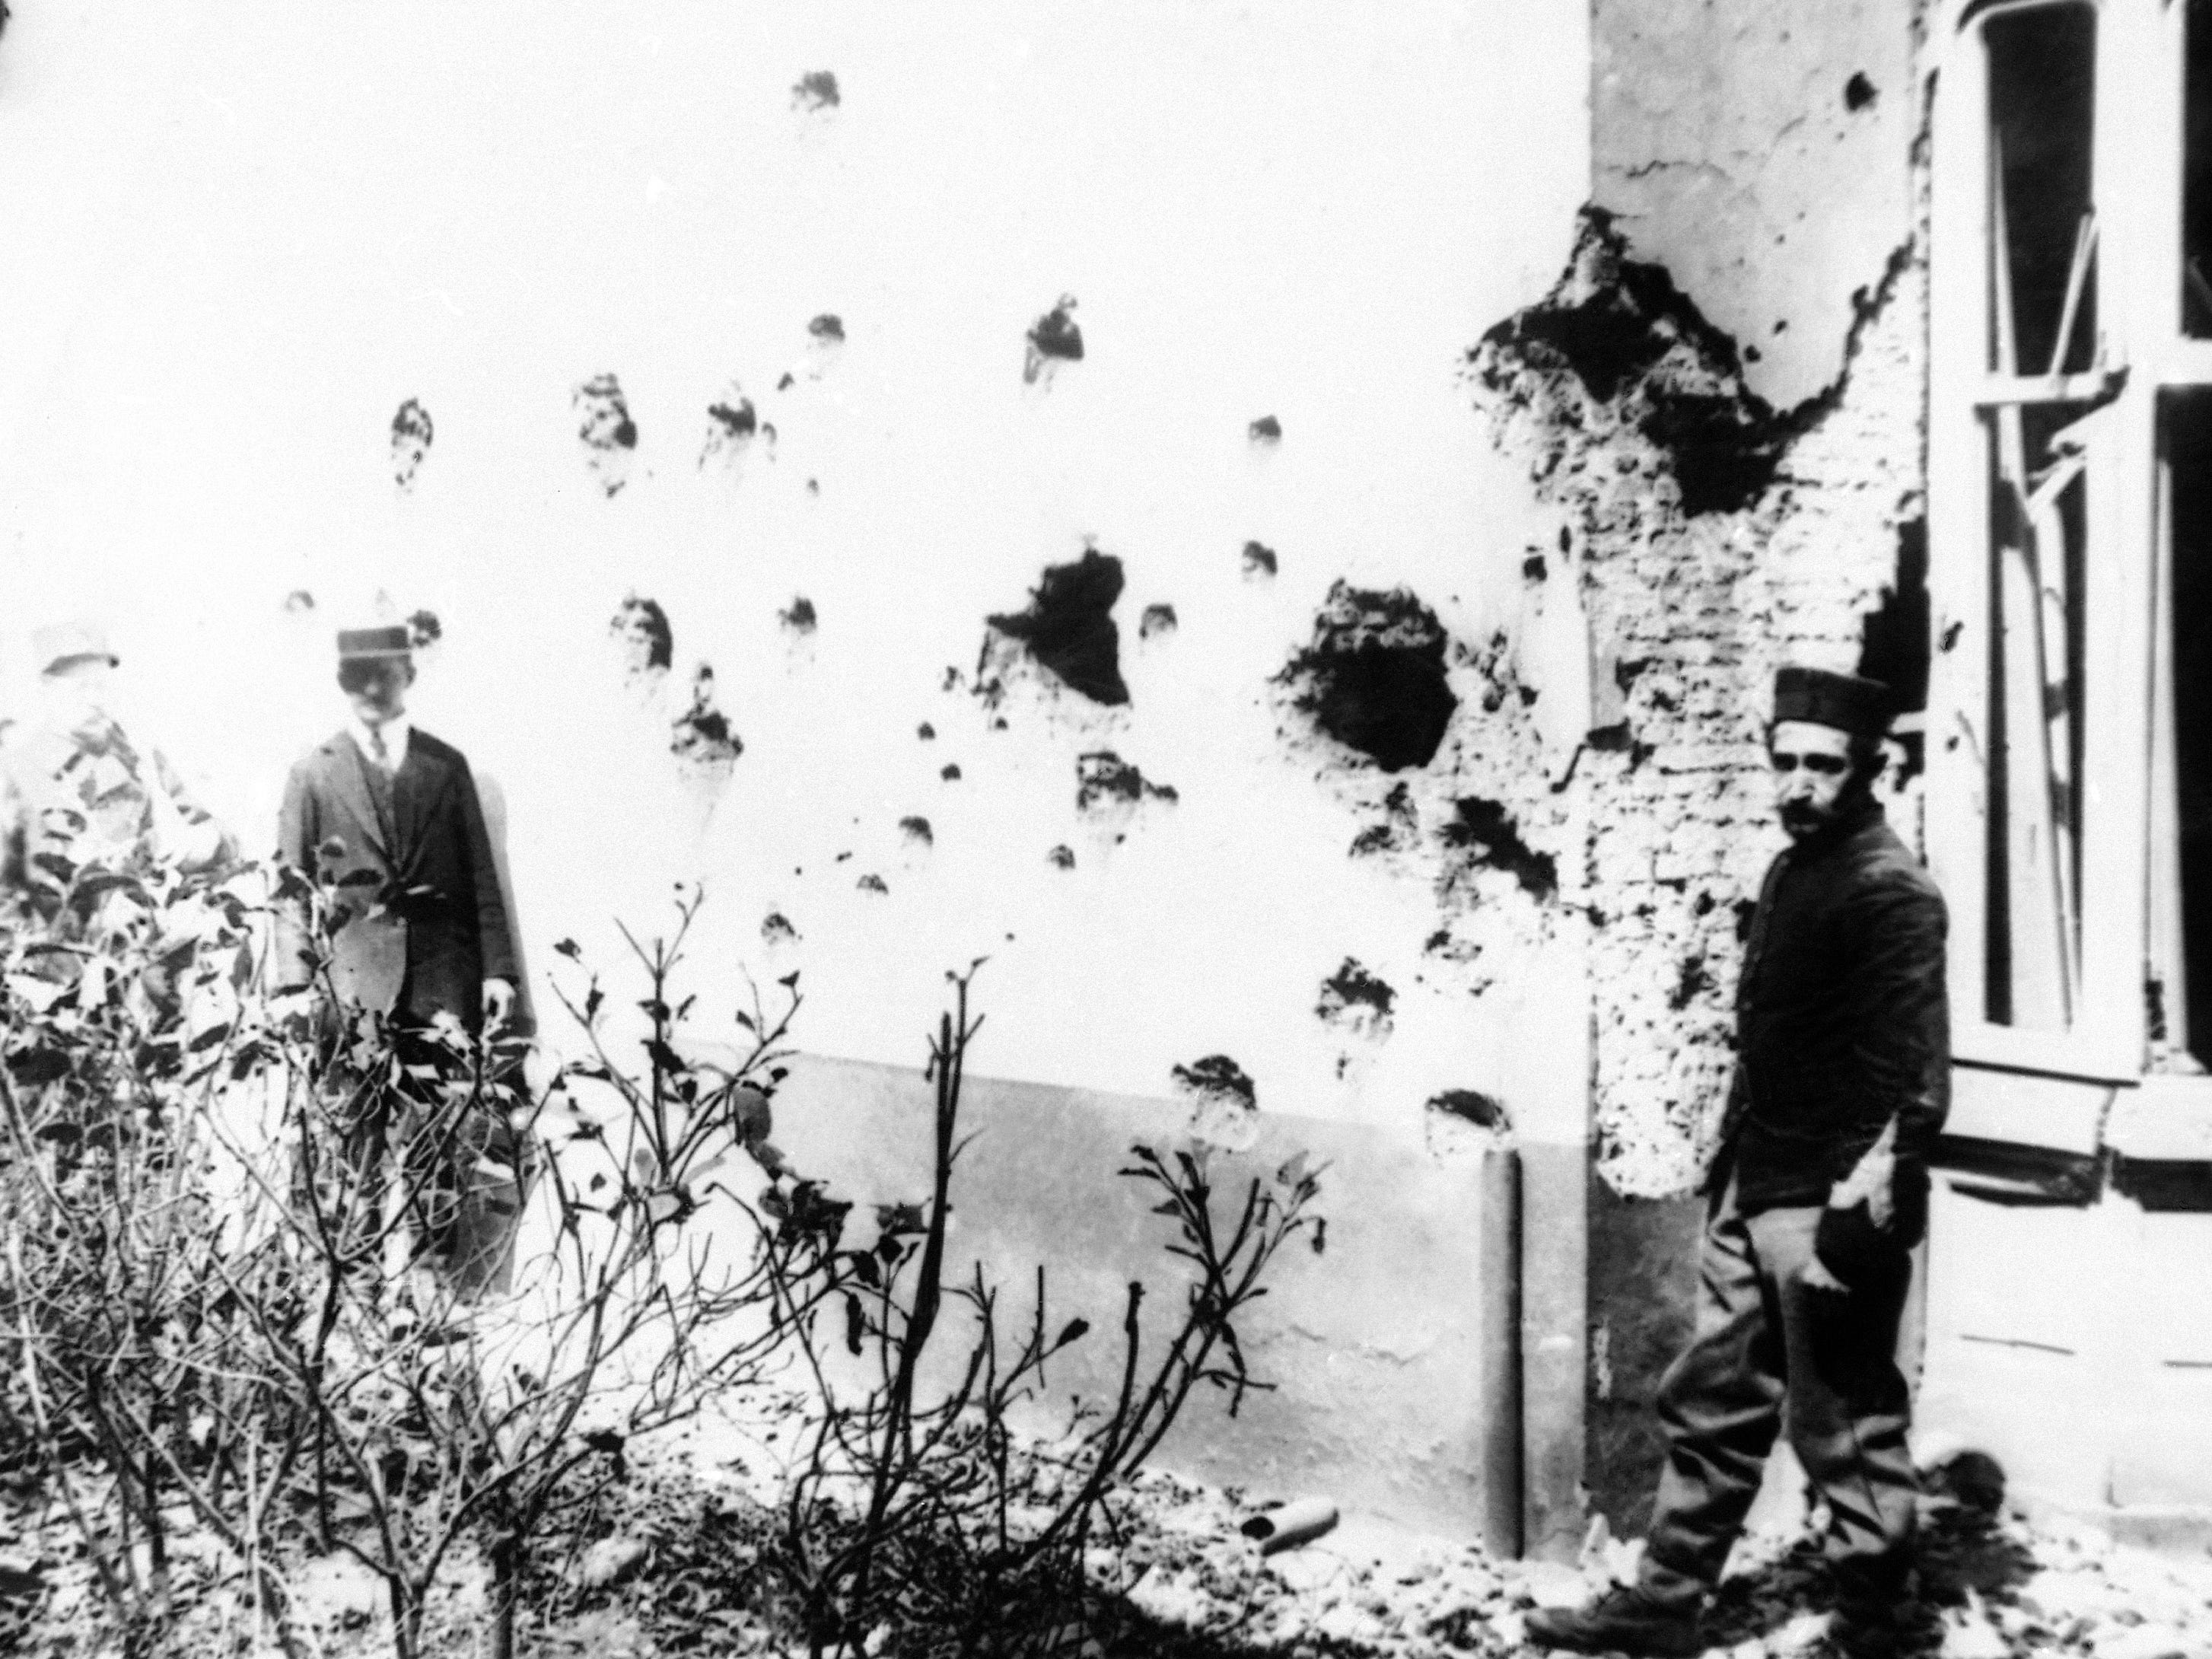 In this 1914 photo, a man stands next to a building damaged by shrapnel from bombs dropped from a zeppelin in Antwerp, Belgium. Antwerp was damaged heavily during World War I.